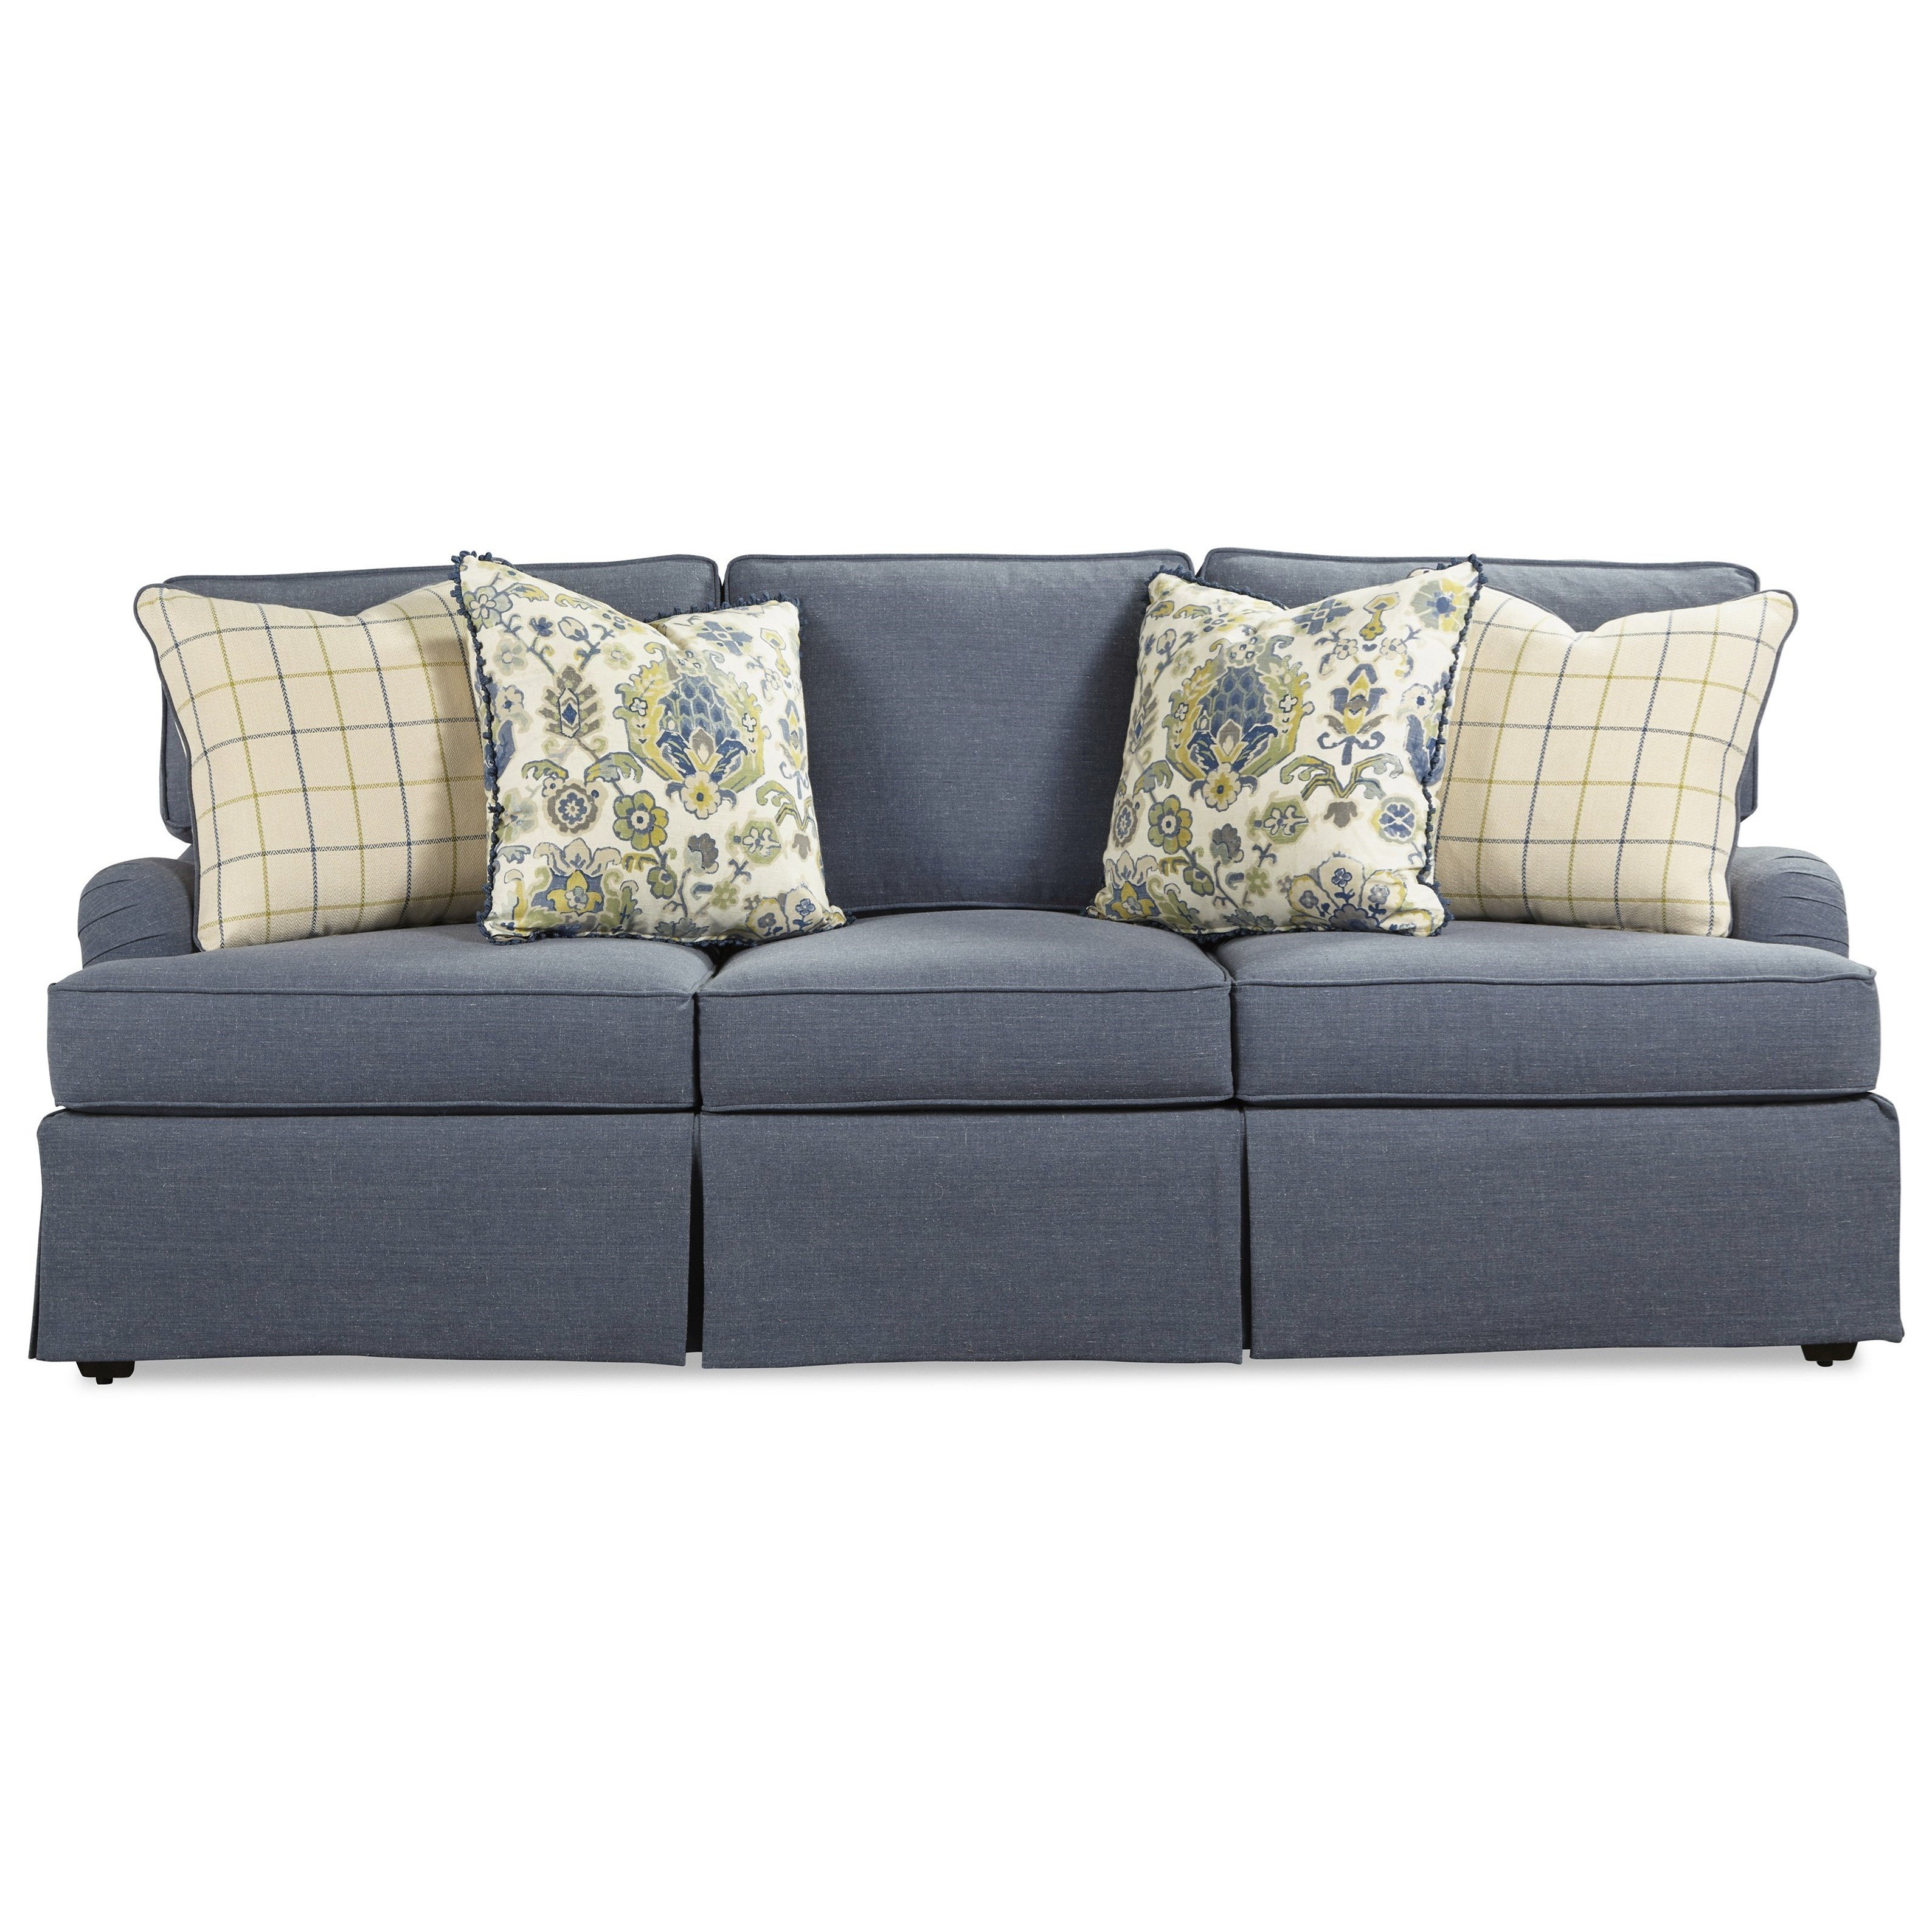 Exceptionnel Rachael Ray Home By Craftmaster R9601 Traditional Skirted Sofa